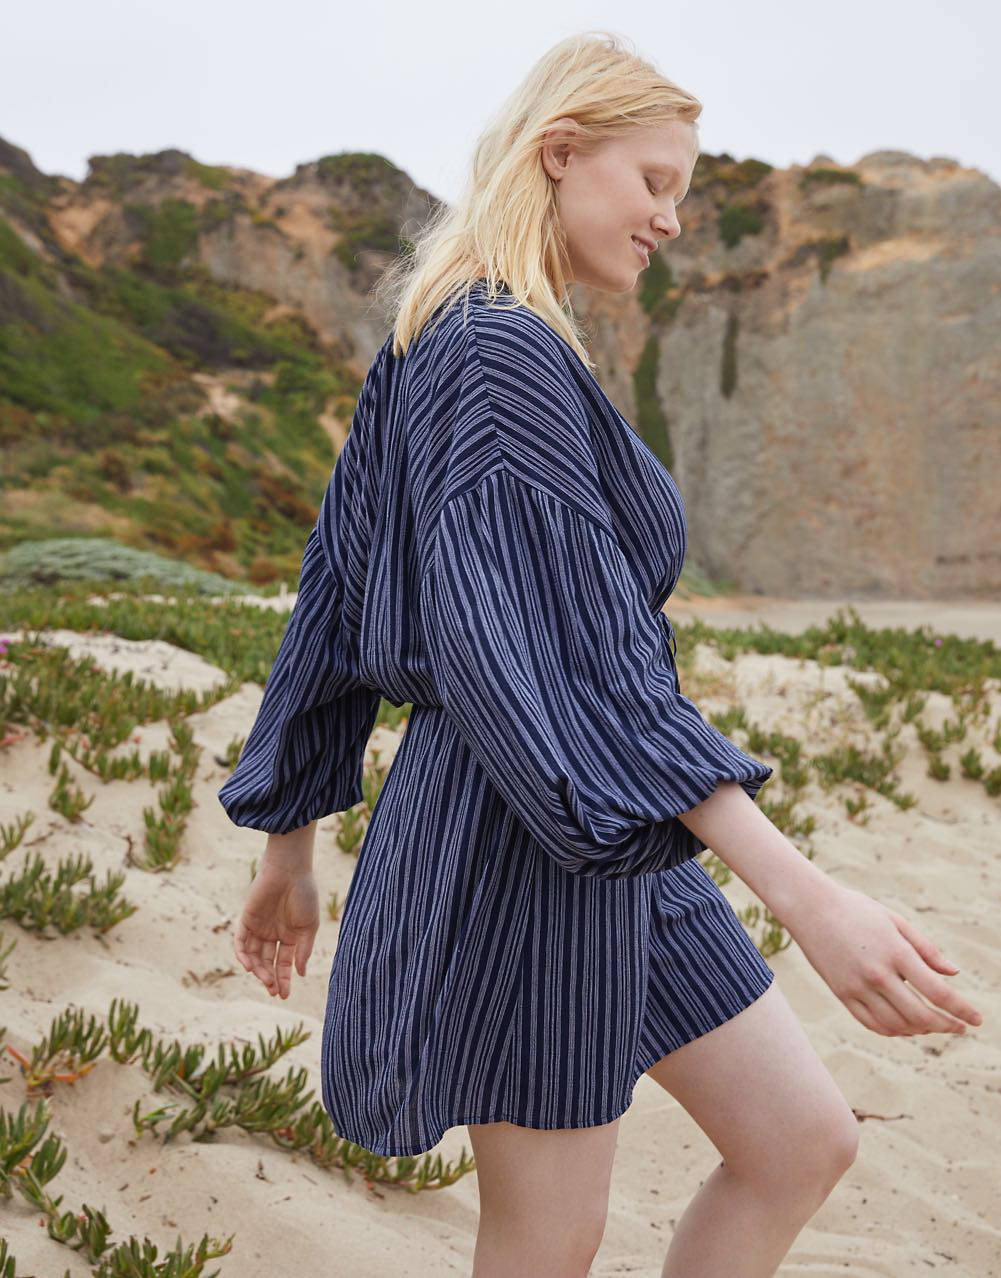 Madewell x Christy Dawn Exclusive Collaboration featured